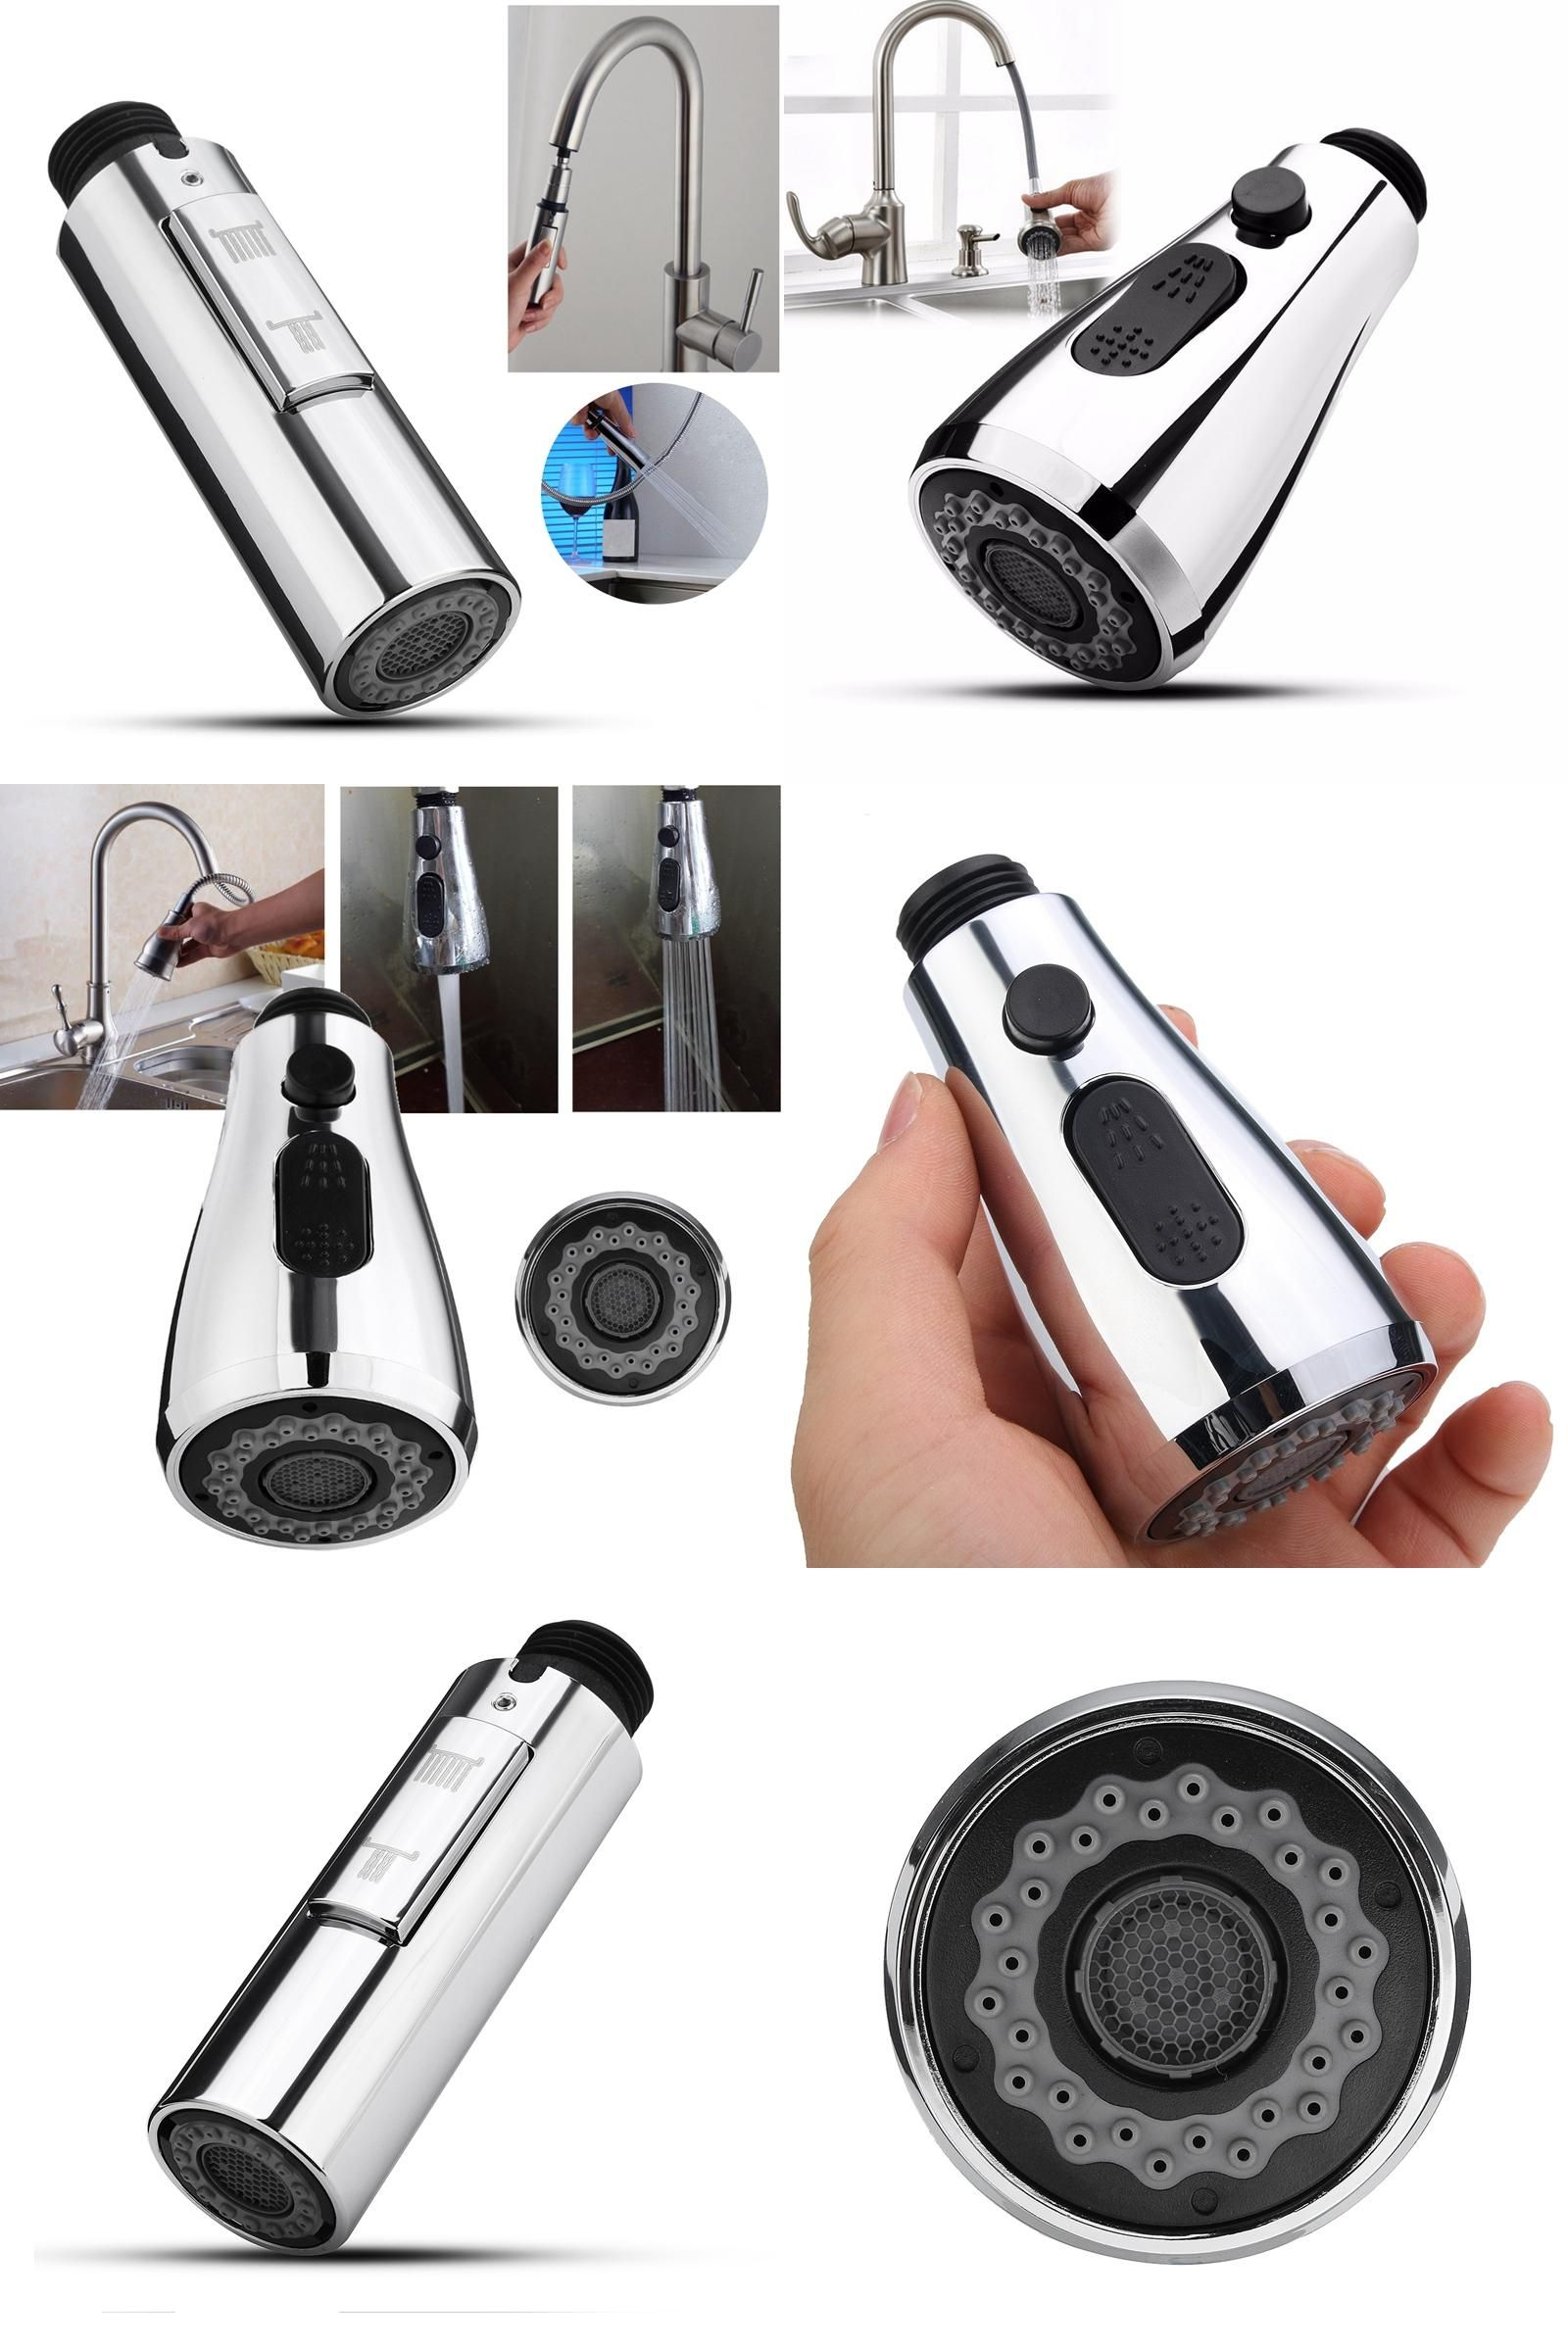 Visit to Buy] 1pc Pull Out Down Kitchen Faucet Spray Nozzle 360 ...